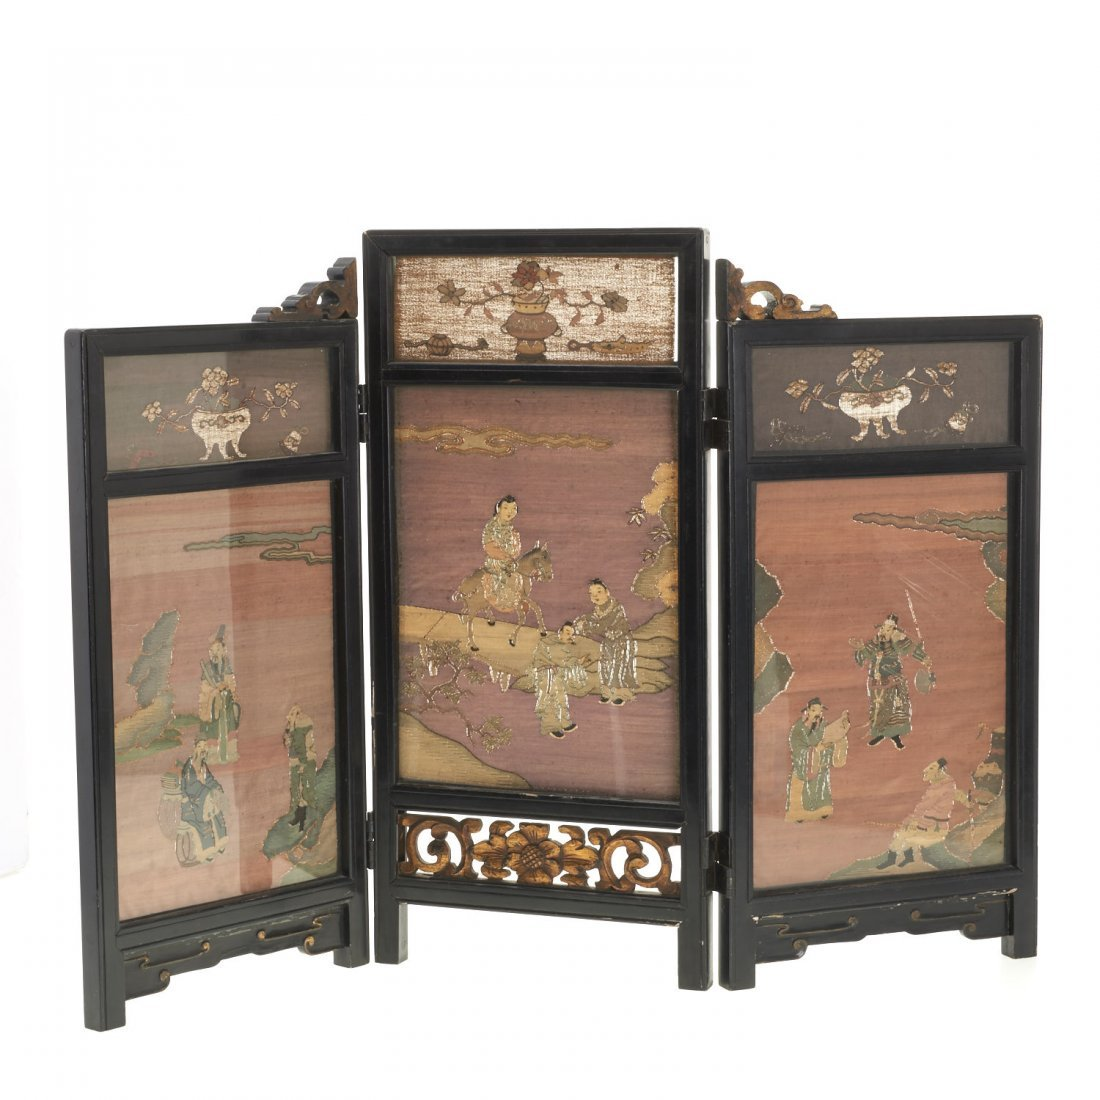 Antique Chinese Kesi panel, lacquer table screen